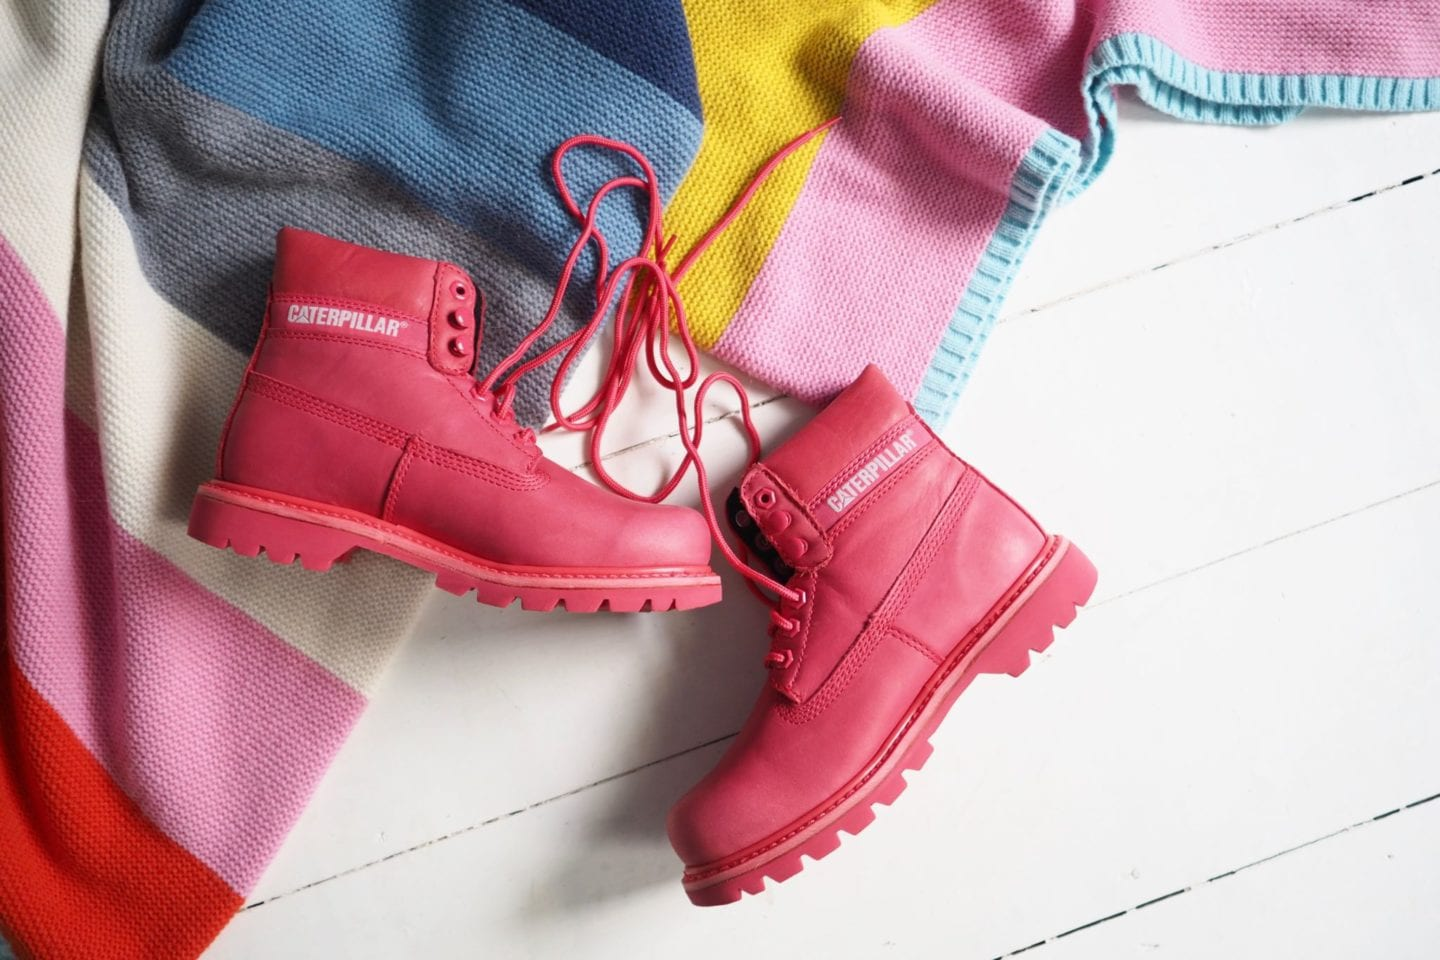 cat-boots-in-bright-red